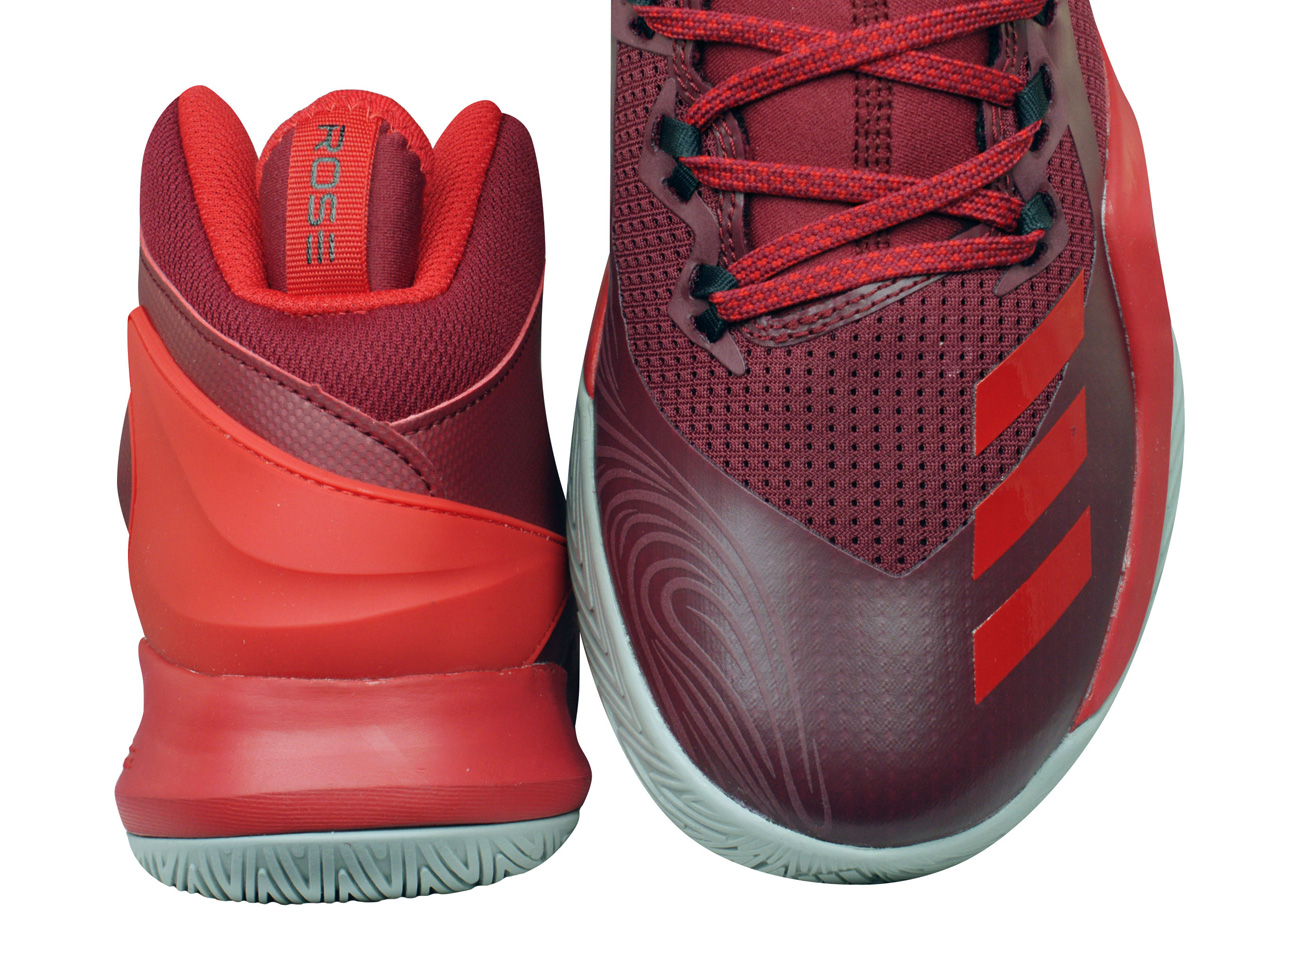 c6082060bf19 adidas D Rose Dominate IV Mens Basketball Trainers   Shoes - Red at ...